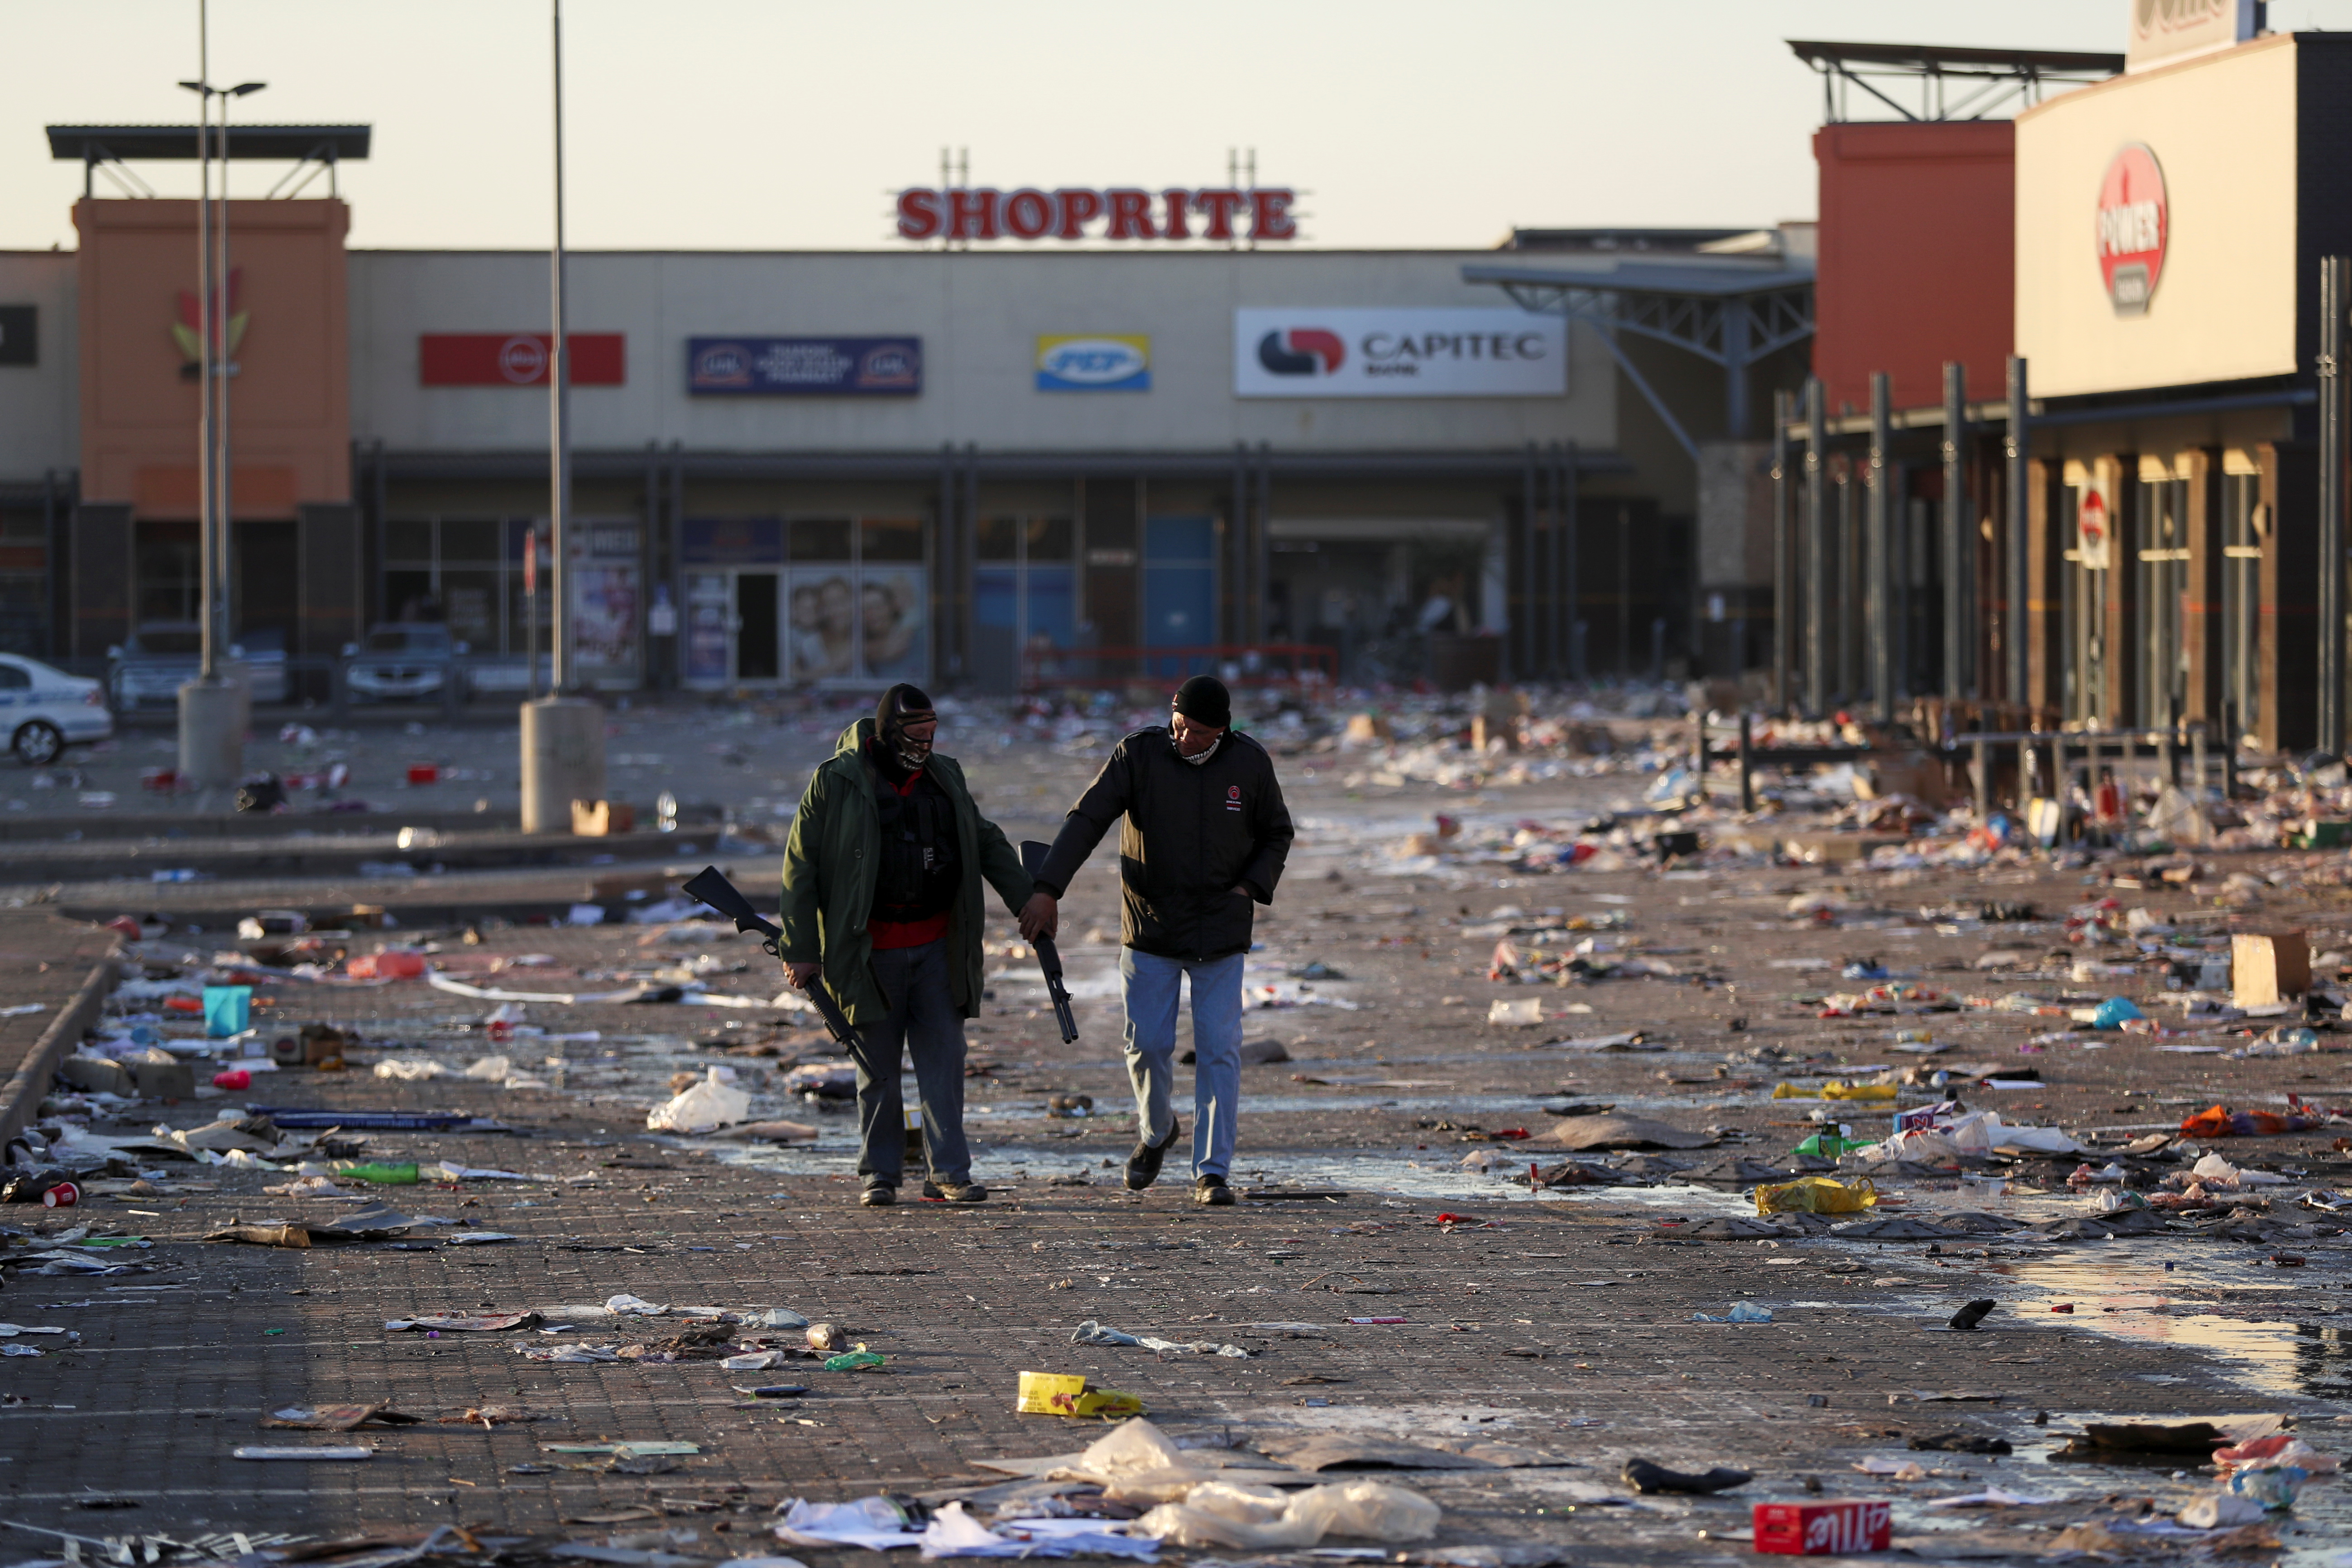 Members of a private security walk at a looted shopping mall as the country deploys army to quell unrest linked to the jailing of former South African President Jacob Zuma, in Vosloorus, South Africa, July 14, 2021. REUTERS/Siphiwe Sibeko